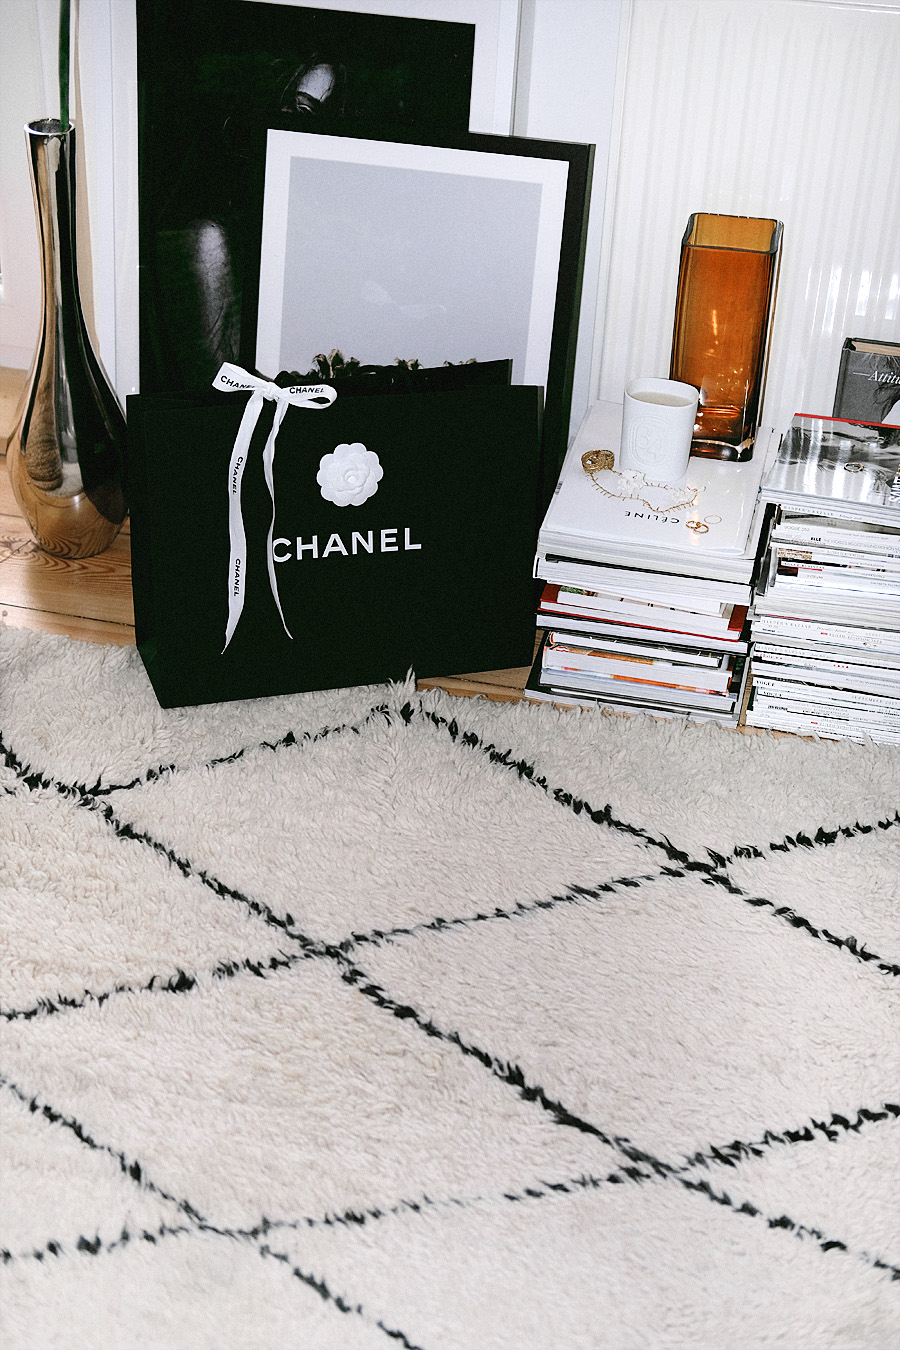 Chanel Bag Reveal Video. My very first Chanel bag, what's in the bag and how I save money